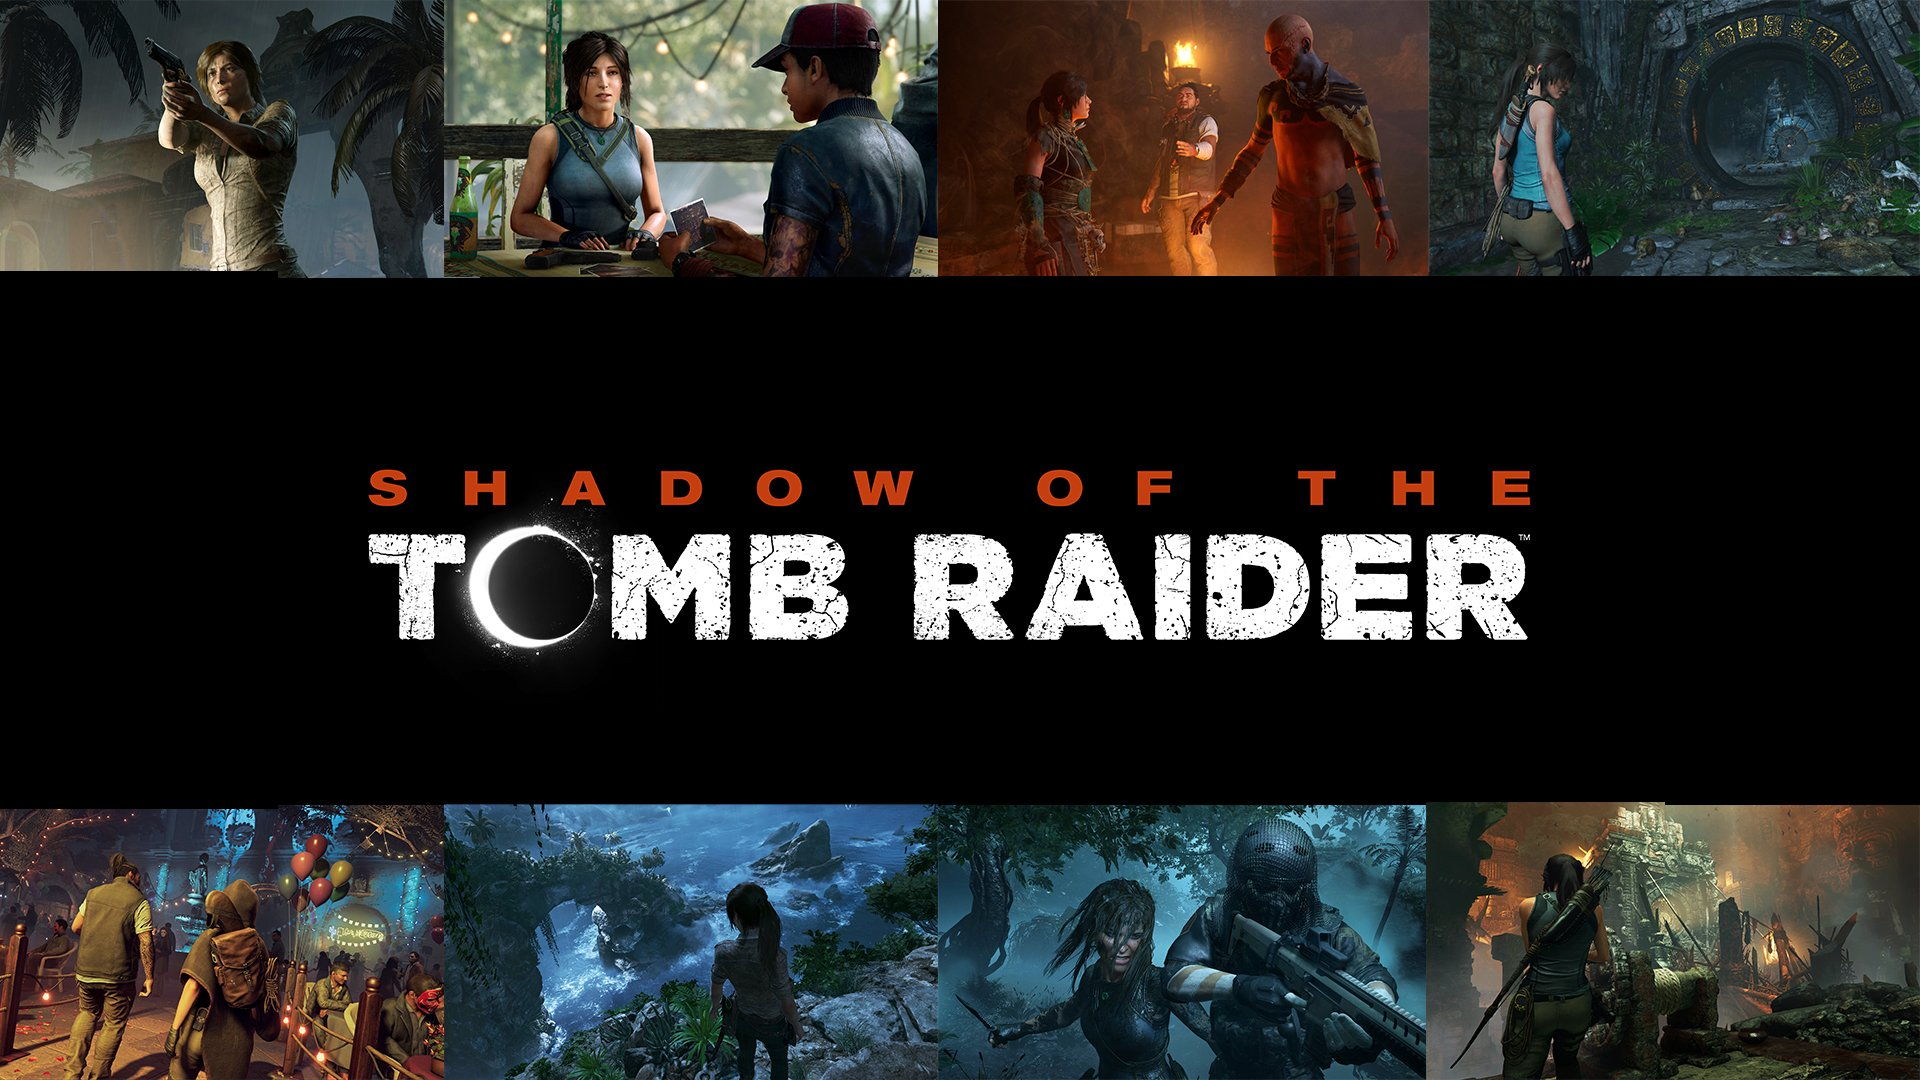 More Tomb Raider Games Are Probably Coming